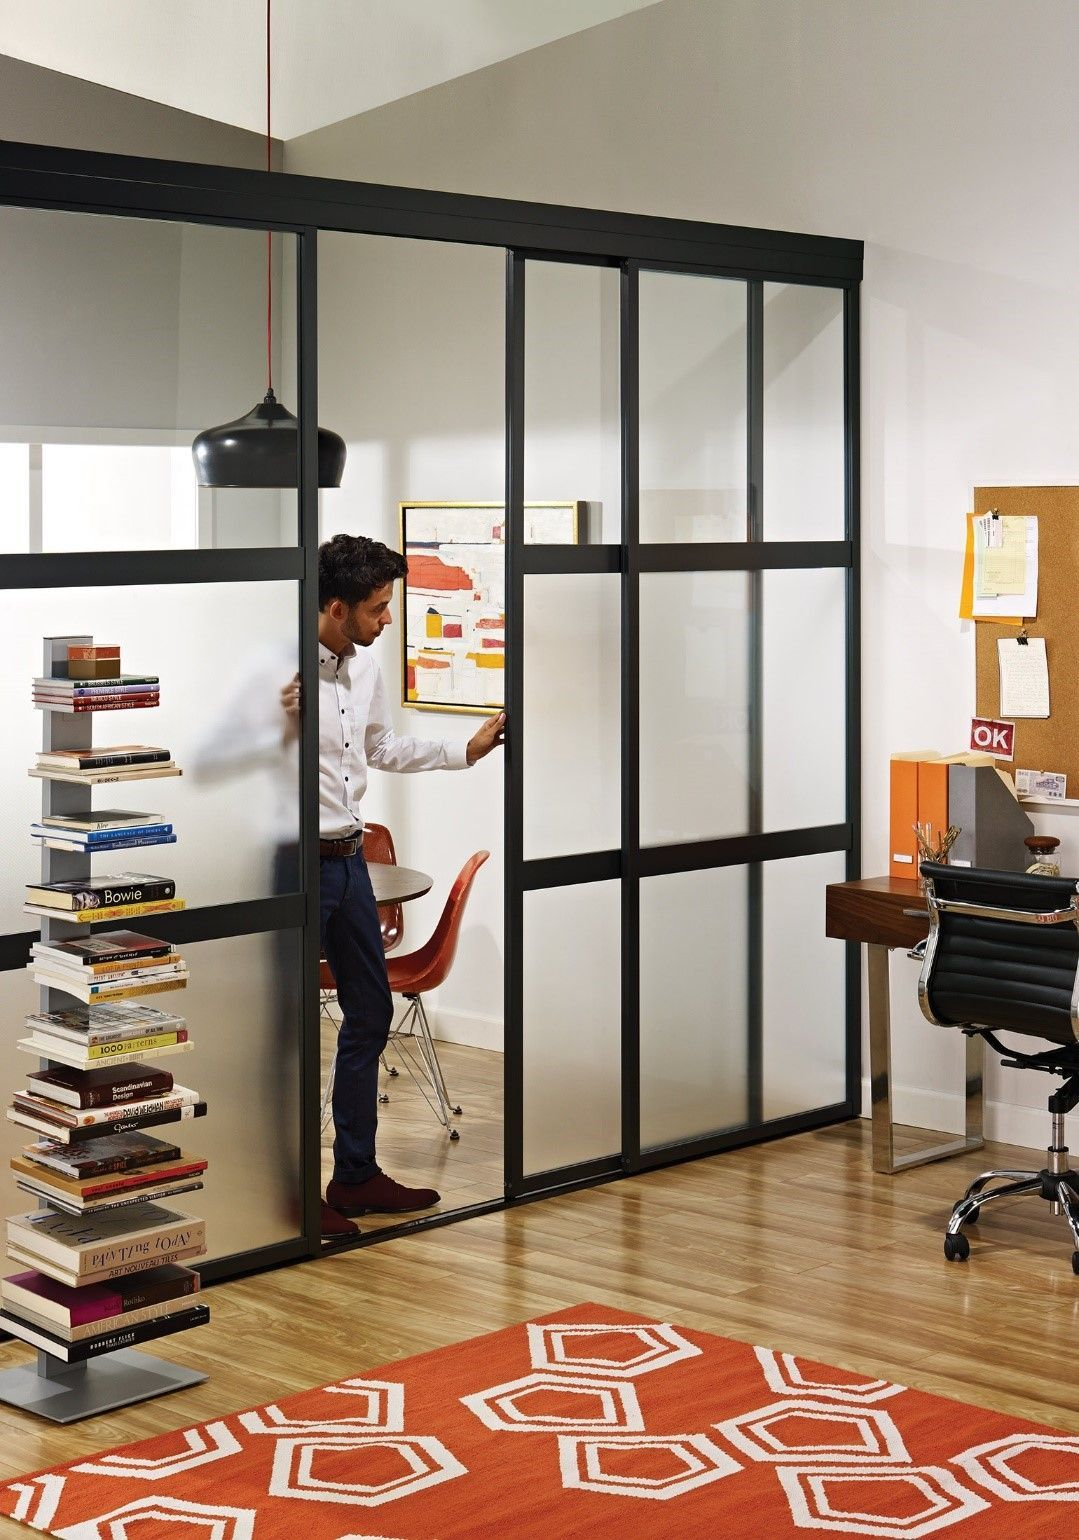 These Sliding Glass Room Dividers Are Used Here To Create A New